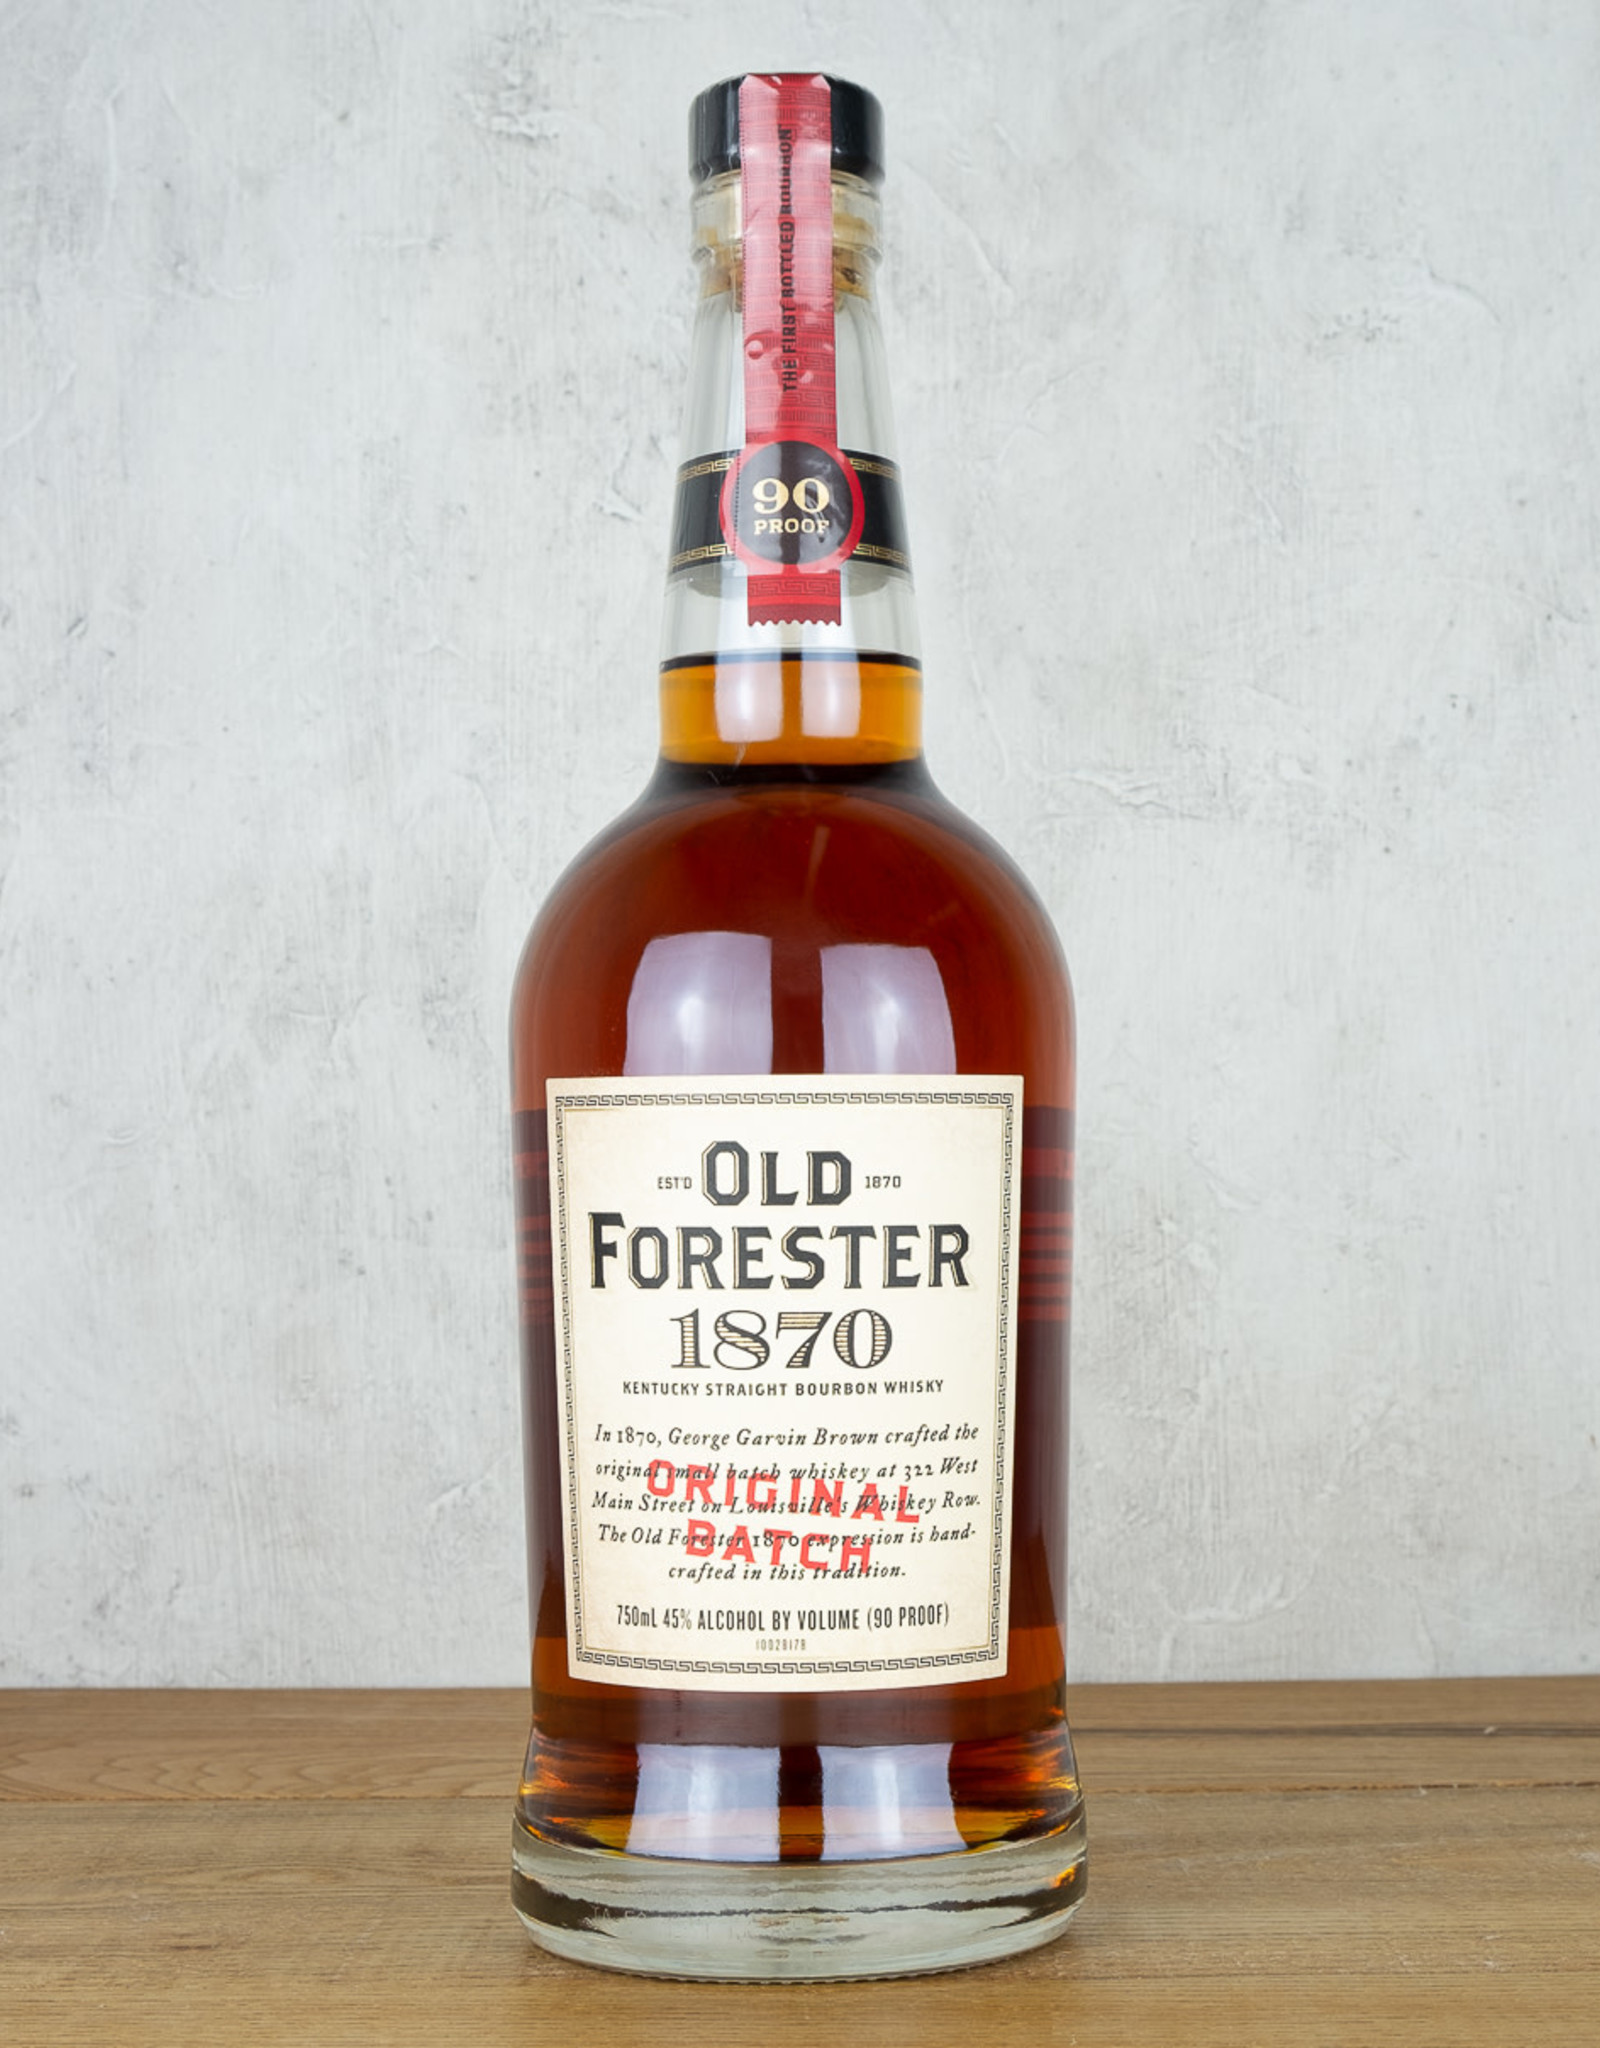 Old Forester 1870